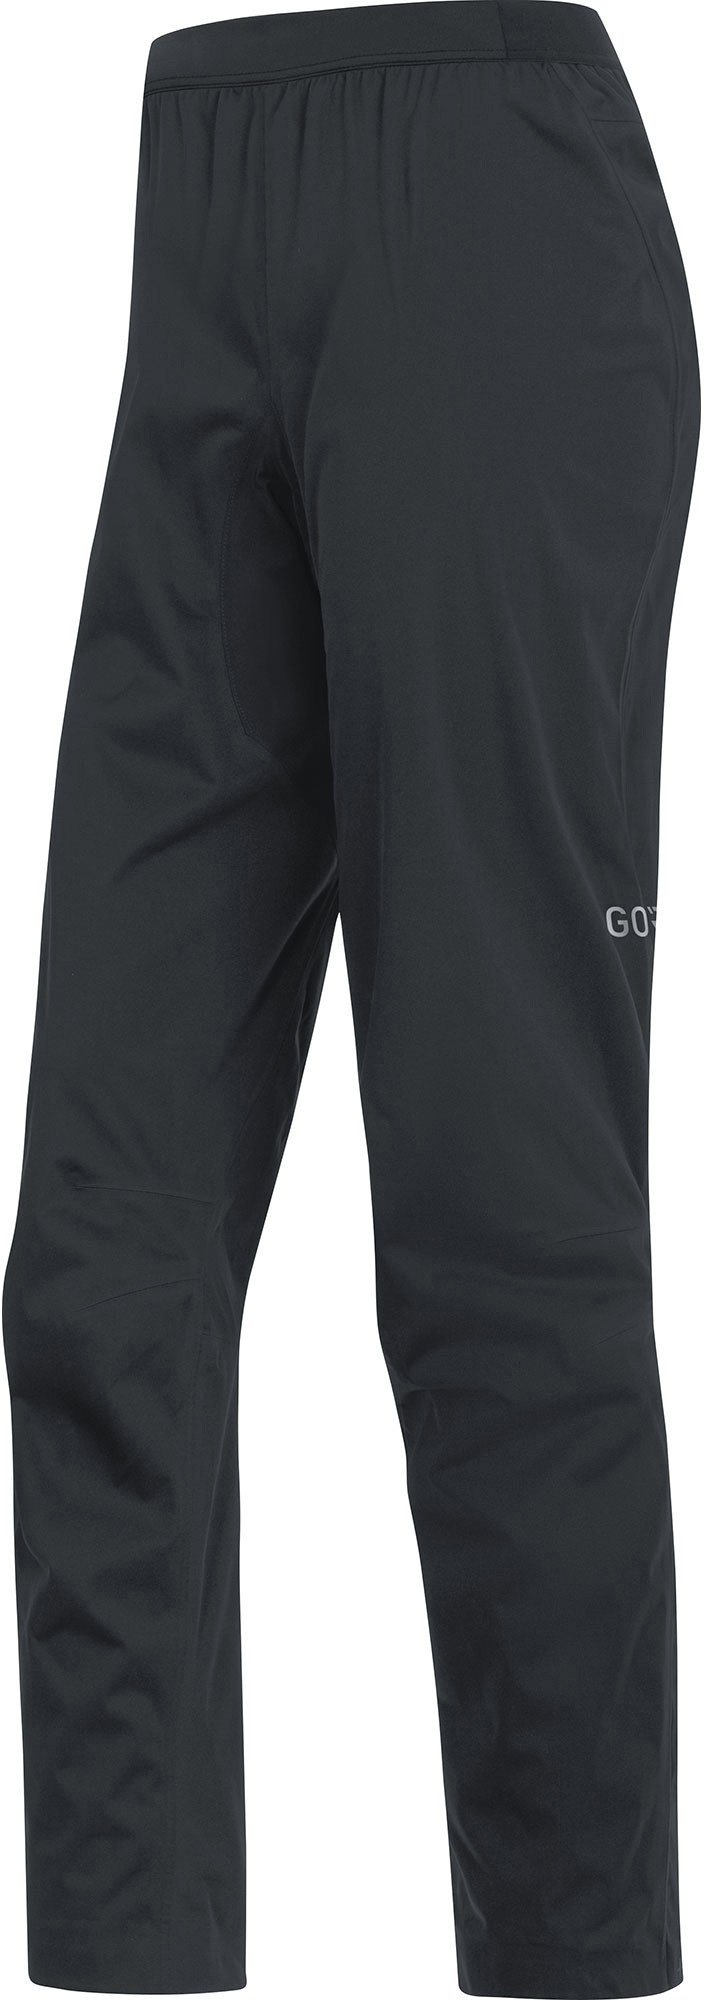 GORE BIKE WEAR C5 GORE-TEX Active Trail Pants - Women's